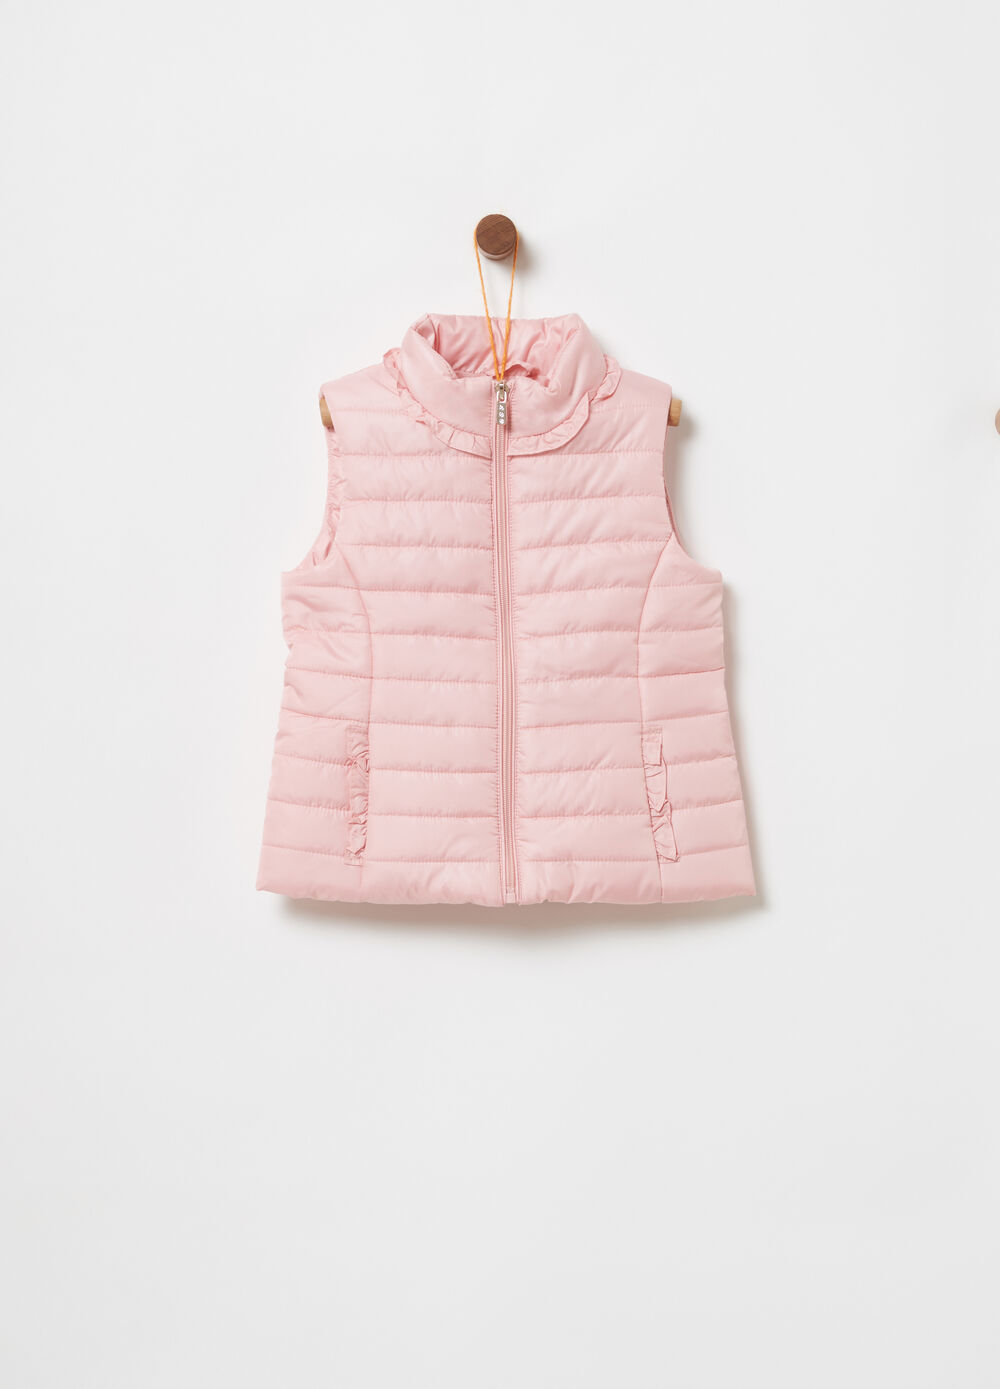 Padded gilet with pleated inserts